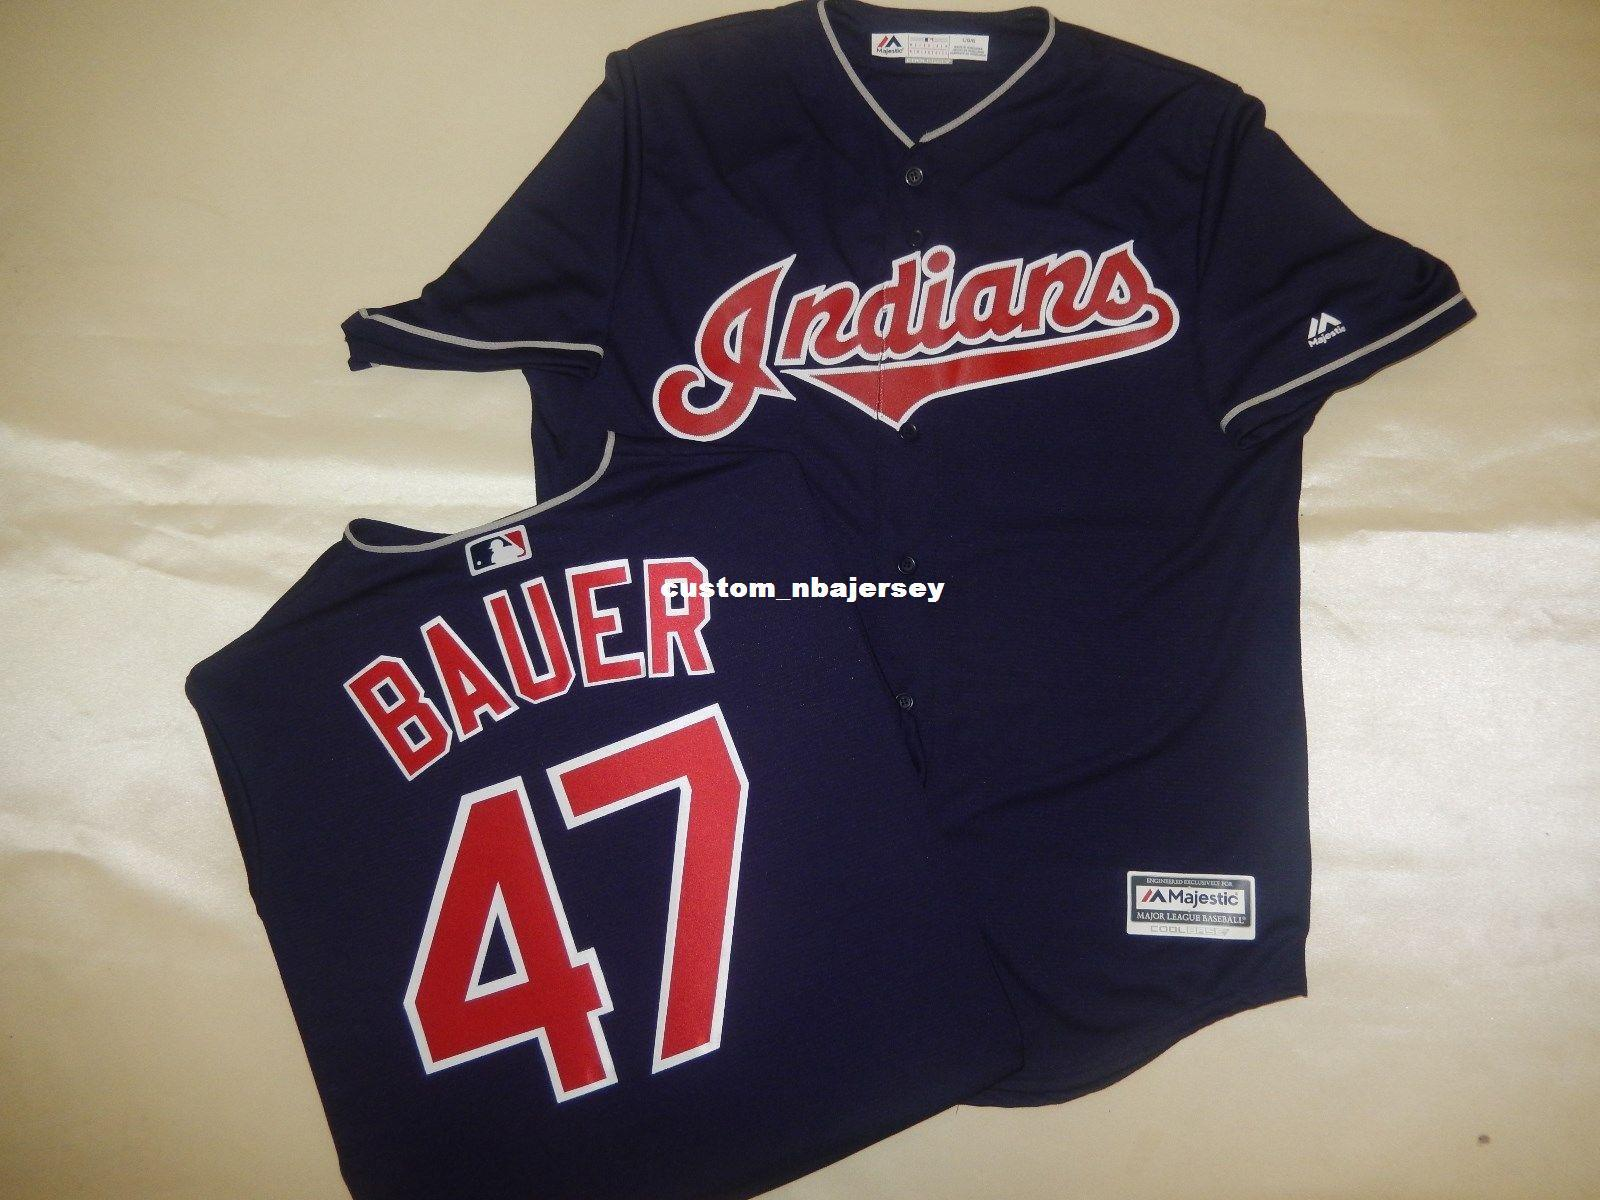 2019 Cheap Custom TREVOR BAUER Sewn Cool Base Baseball Jersey Stitched  Customize Any Name Number MEN WOMEN BASEBALL JERSEY XS 5XL From  Custom nbajersey 6ad4aad1158